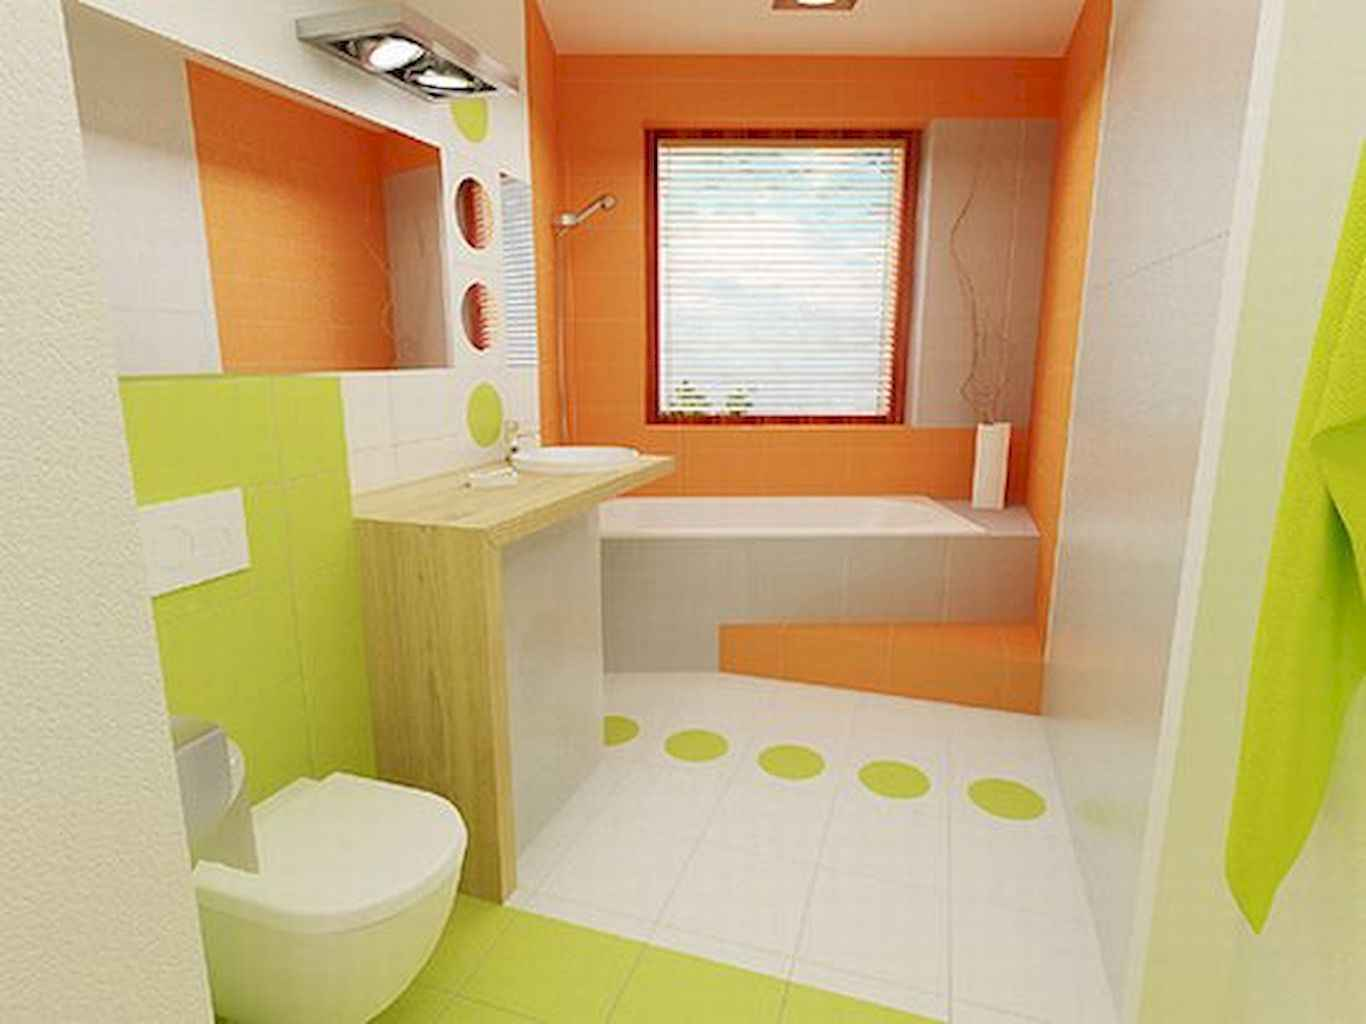 55 cool and relax bathroom design ideas (40)